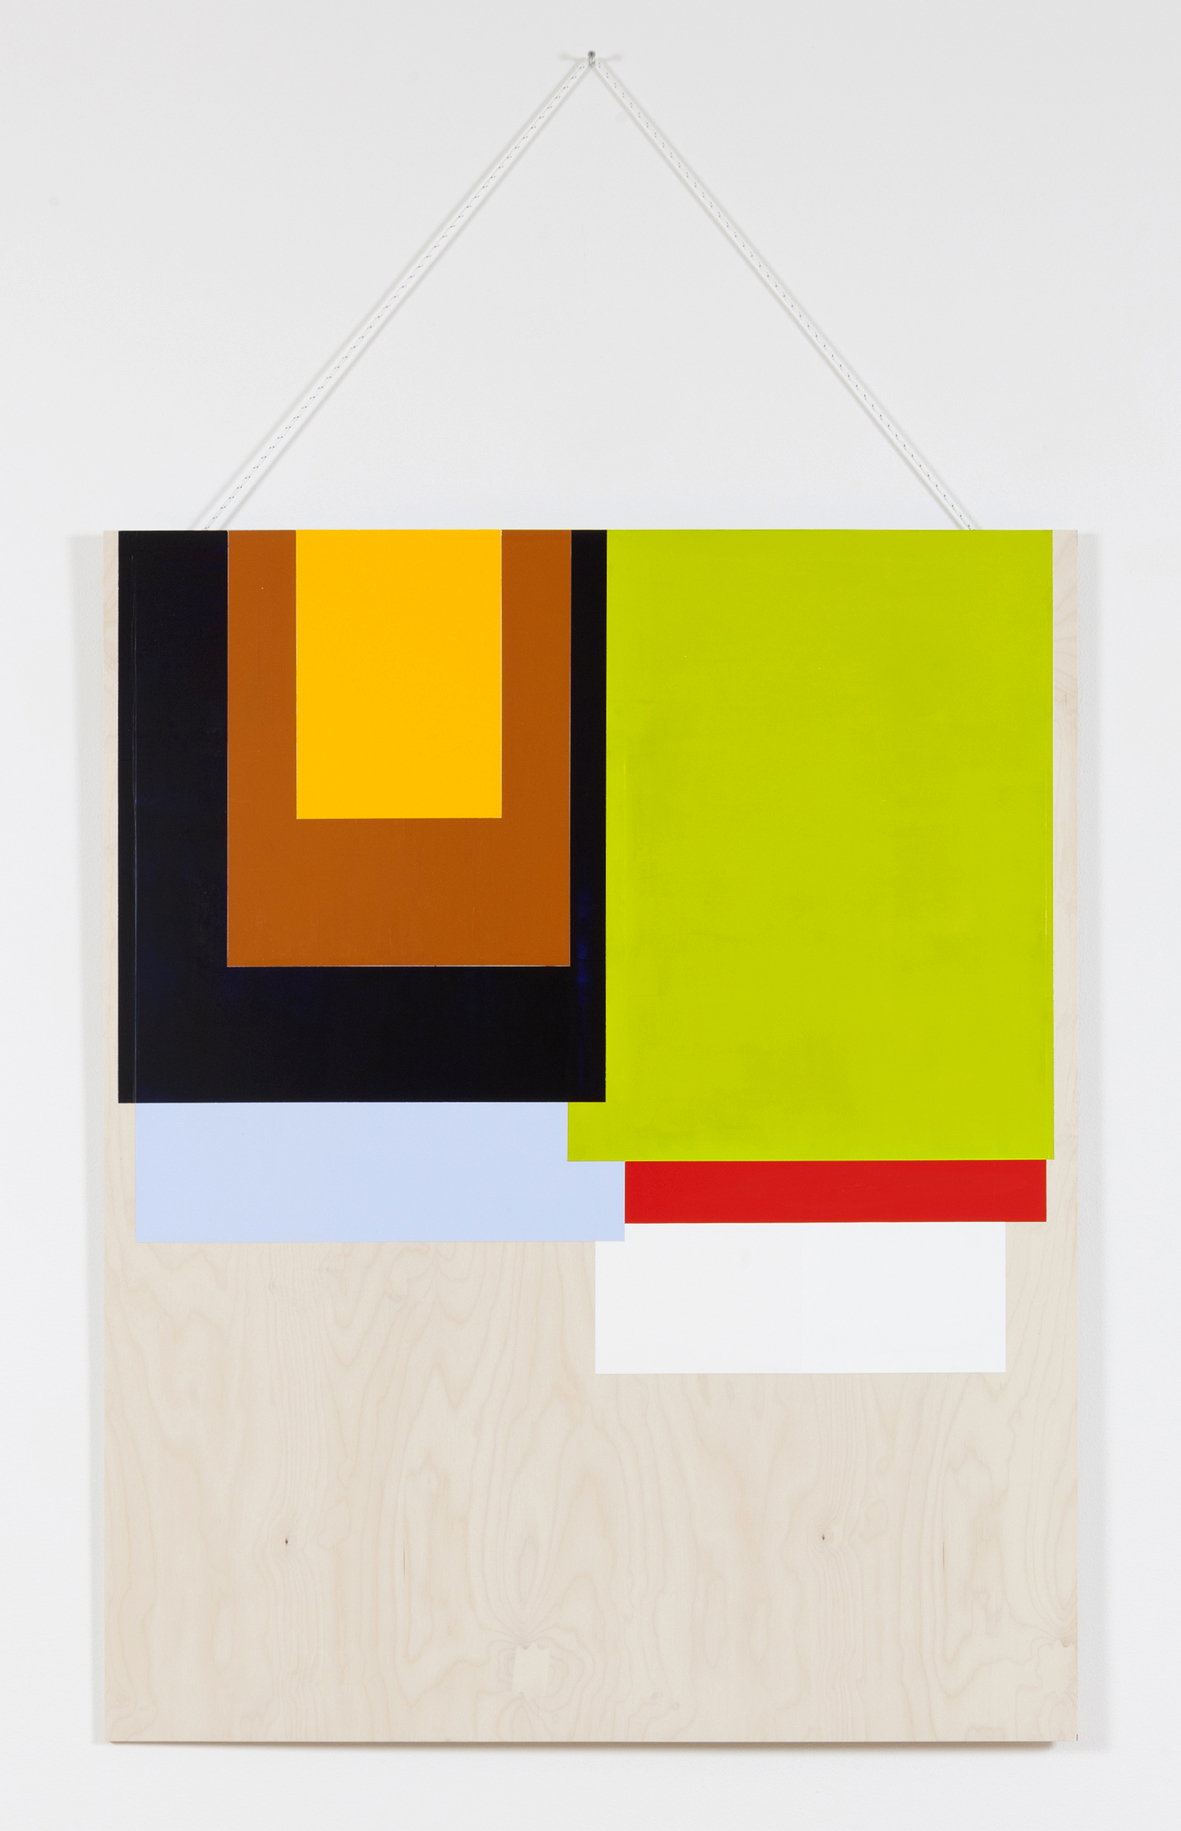 Collected Colors # 2 . 2015. Acrylic and wax on birch plywood. 125 x 100 cm.